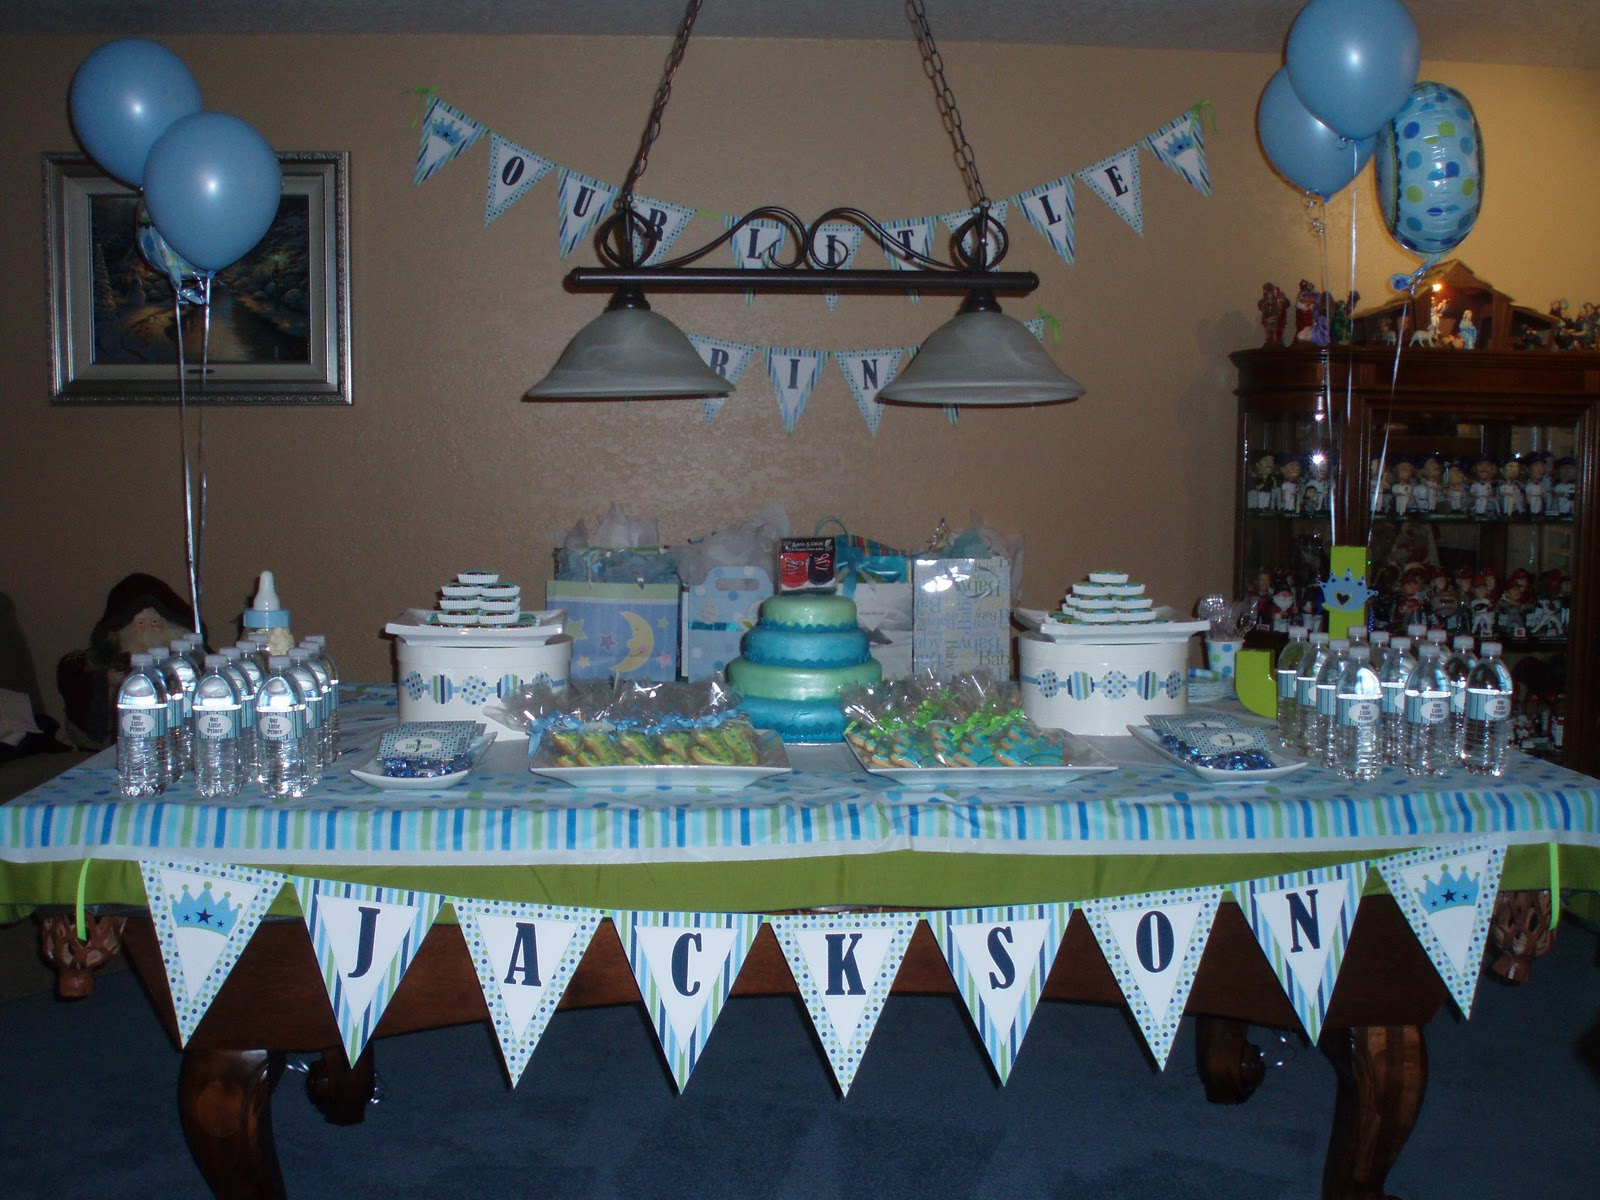 together a dessert table for a baby shower for baby jackson what fun